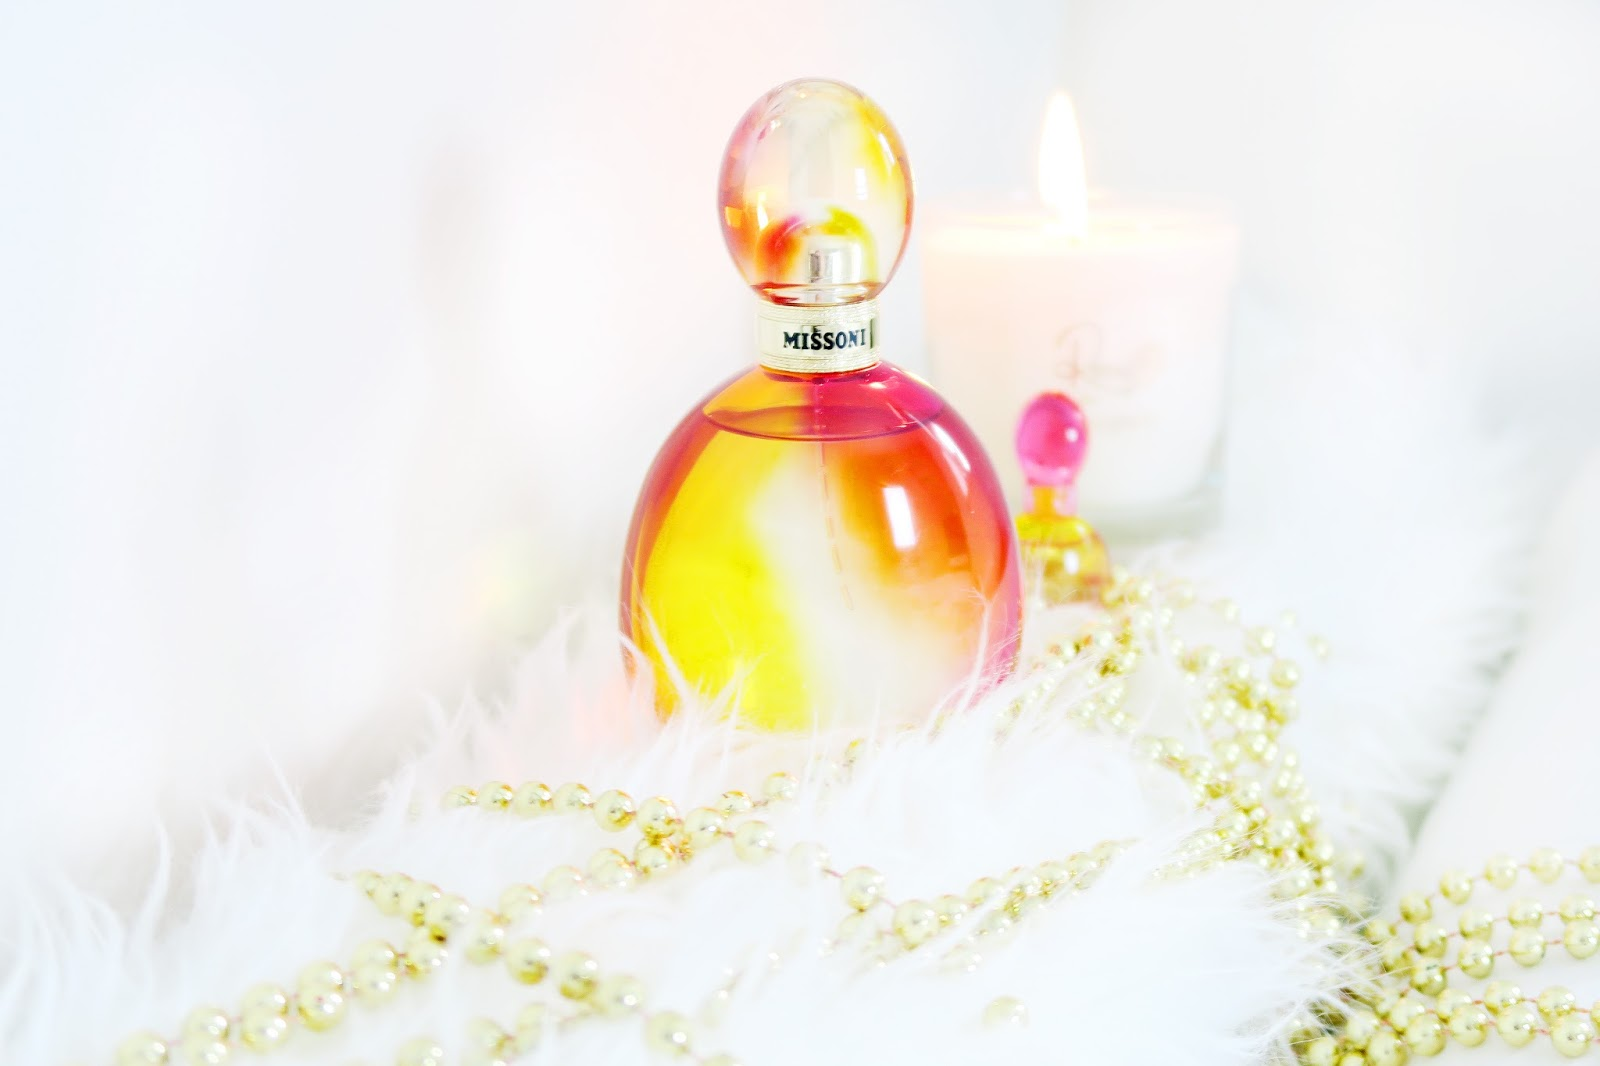 An image of Missoni Eau de Toilette